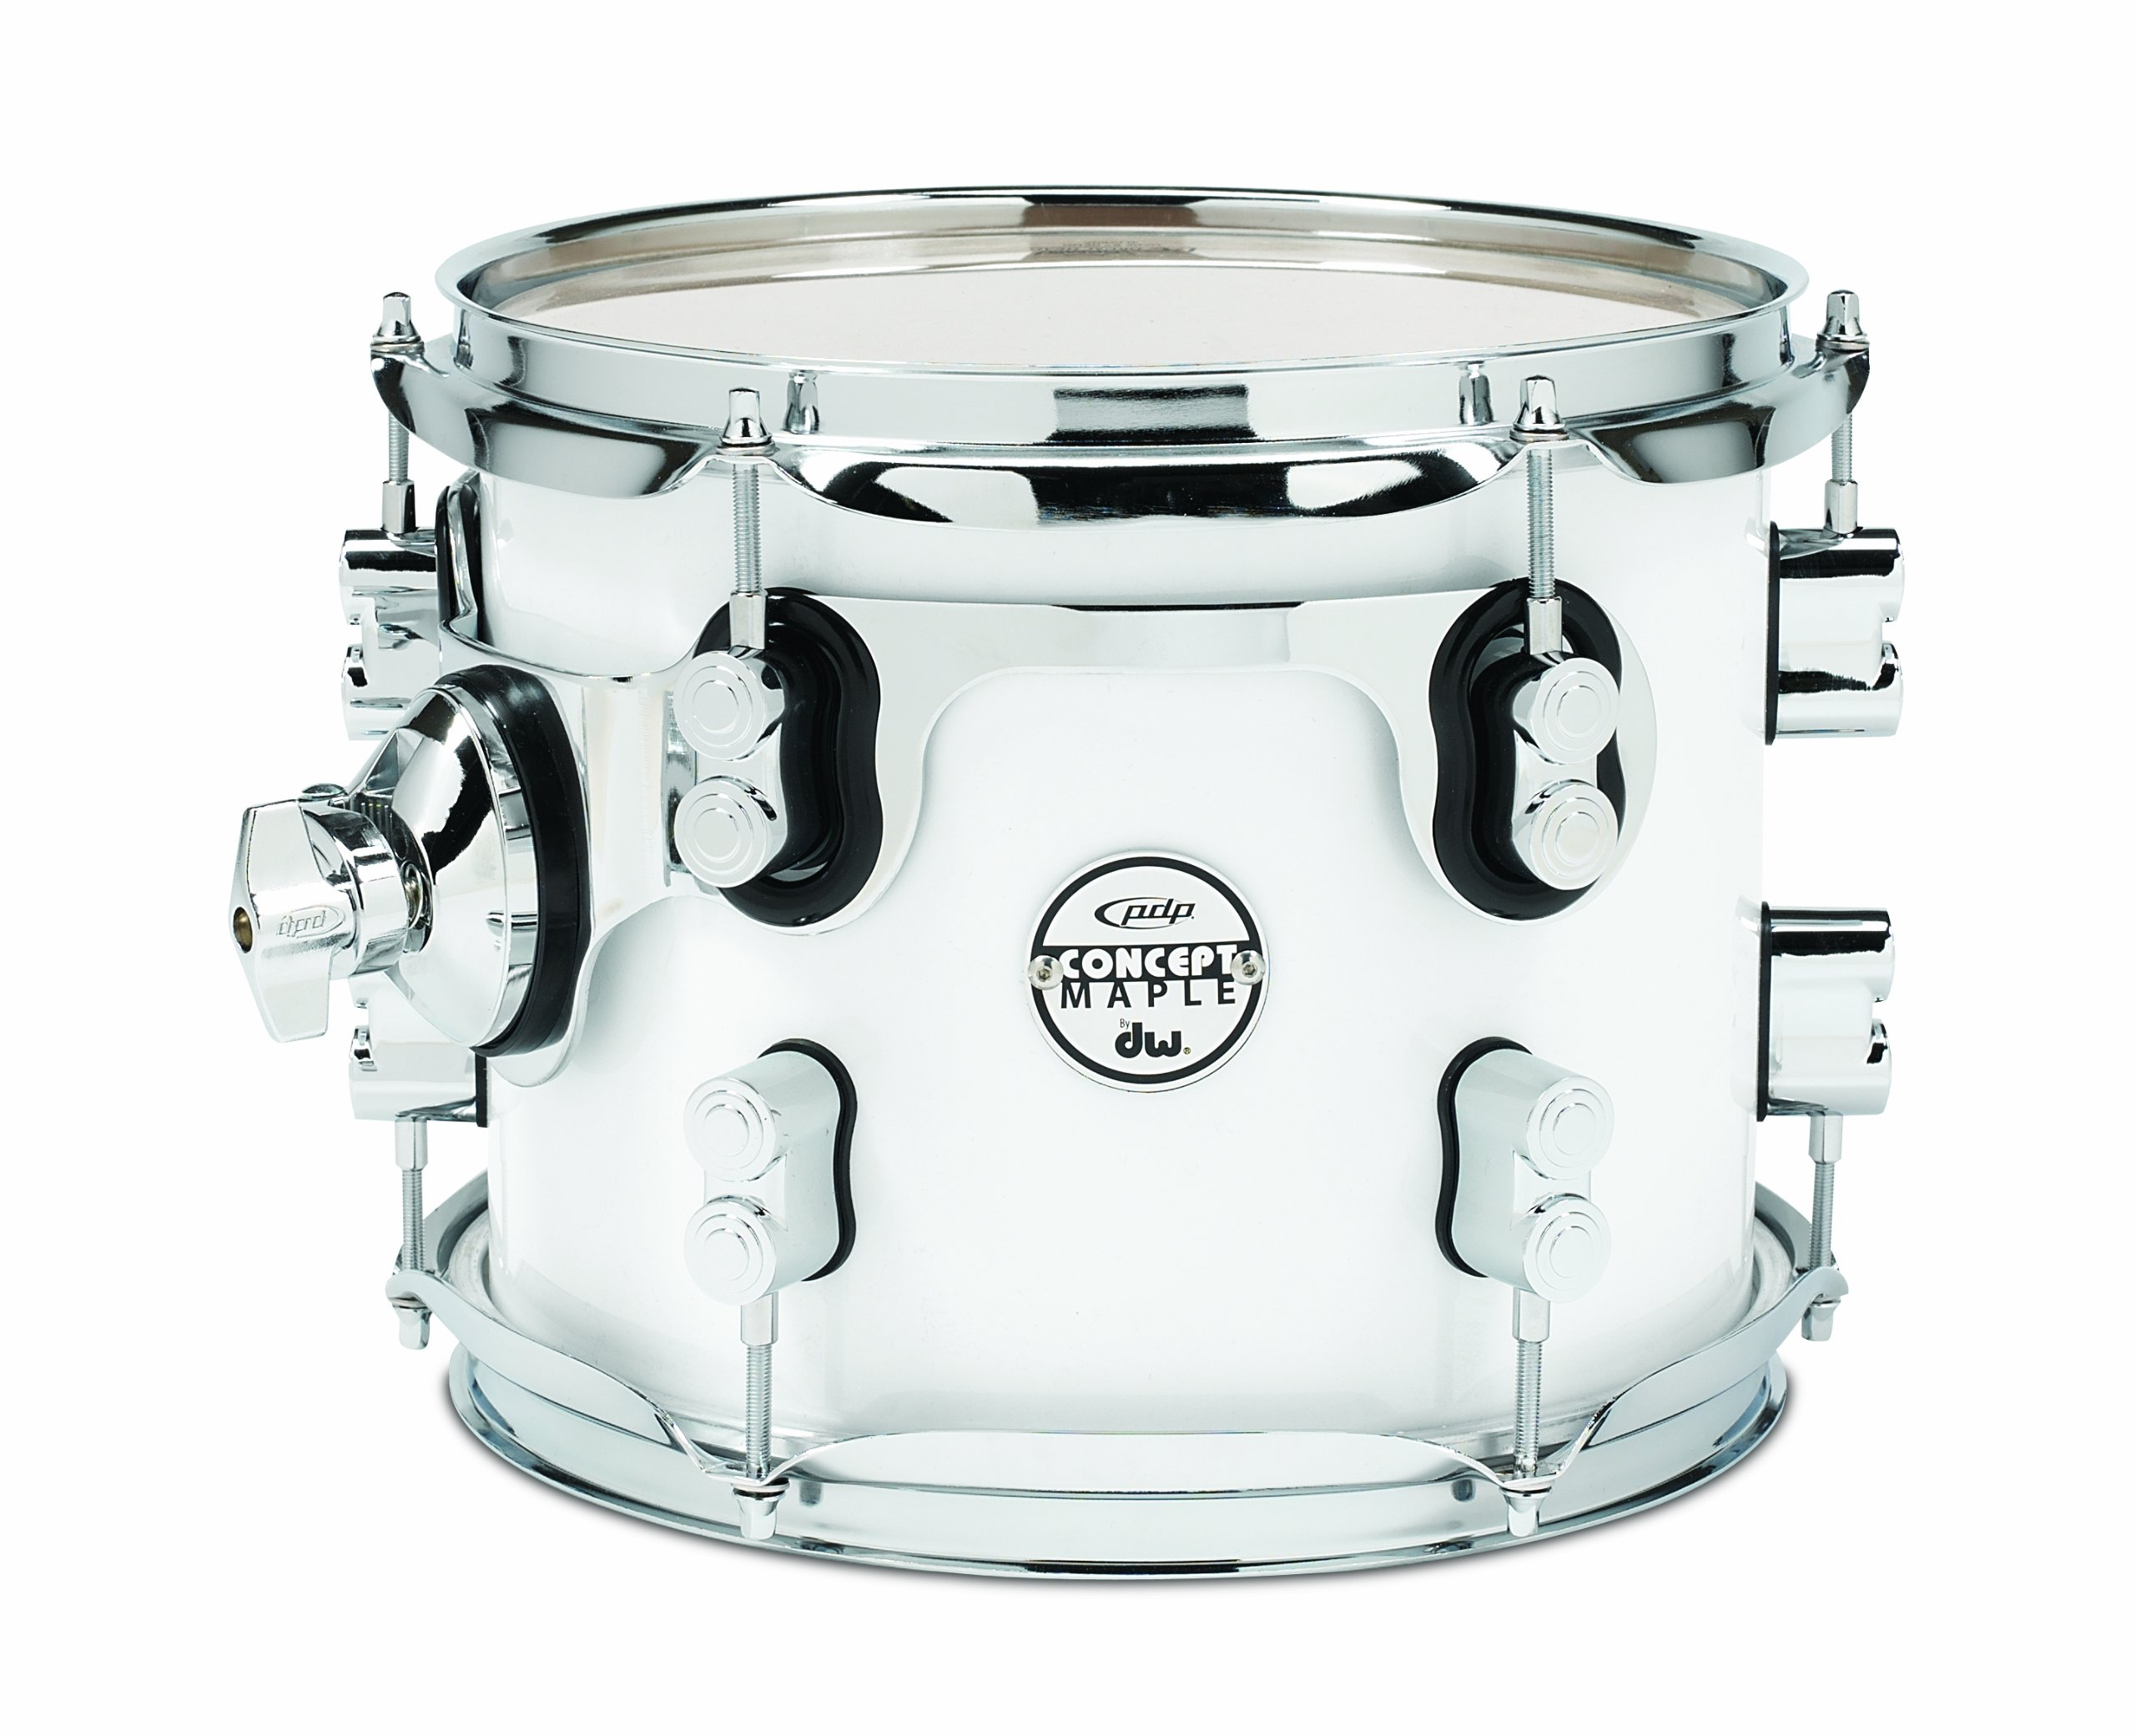 Pacific Drums PDCM0810STPW 8 x 10 Inches Tom with Chrome Hardware - Pearlescent White